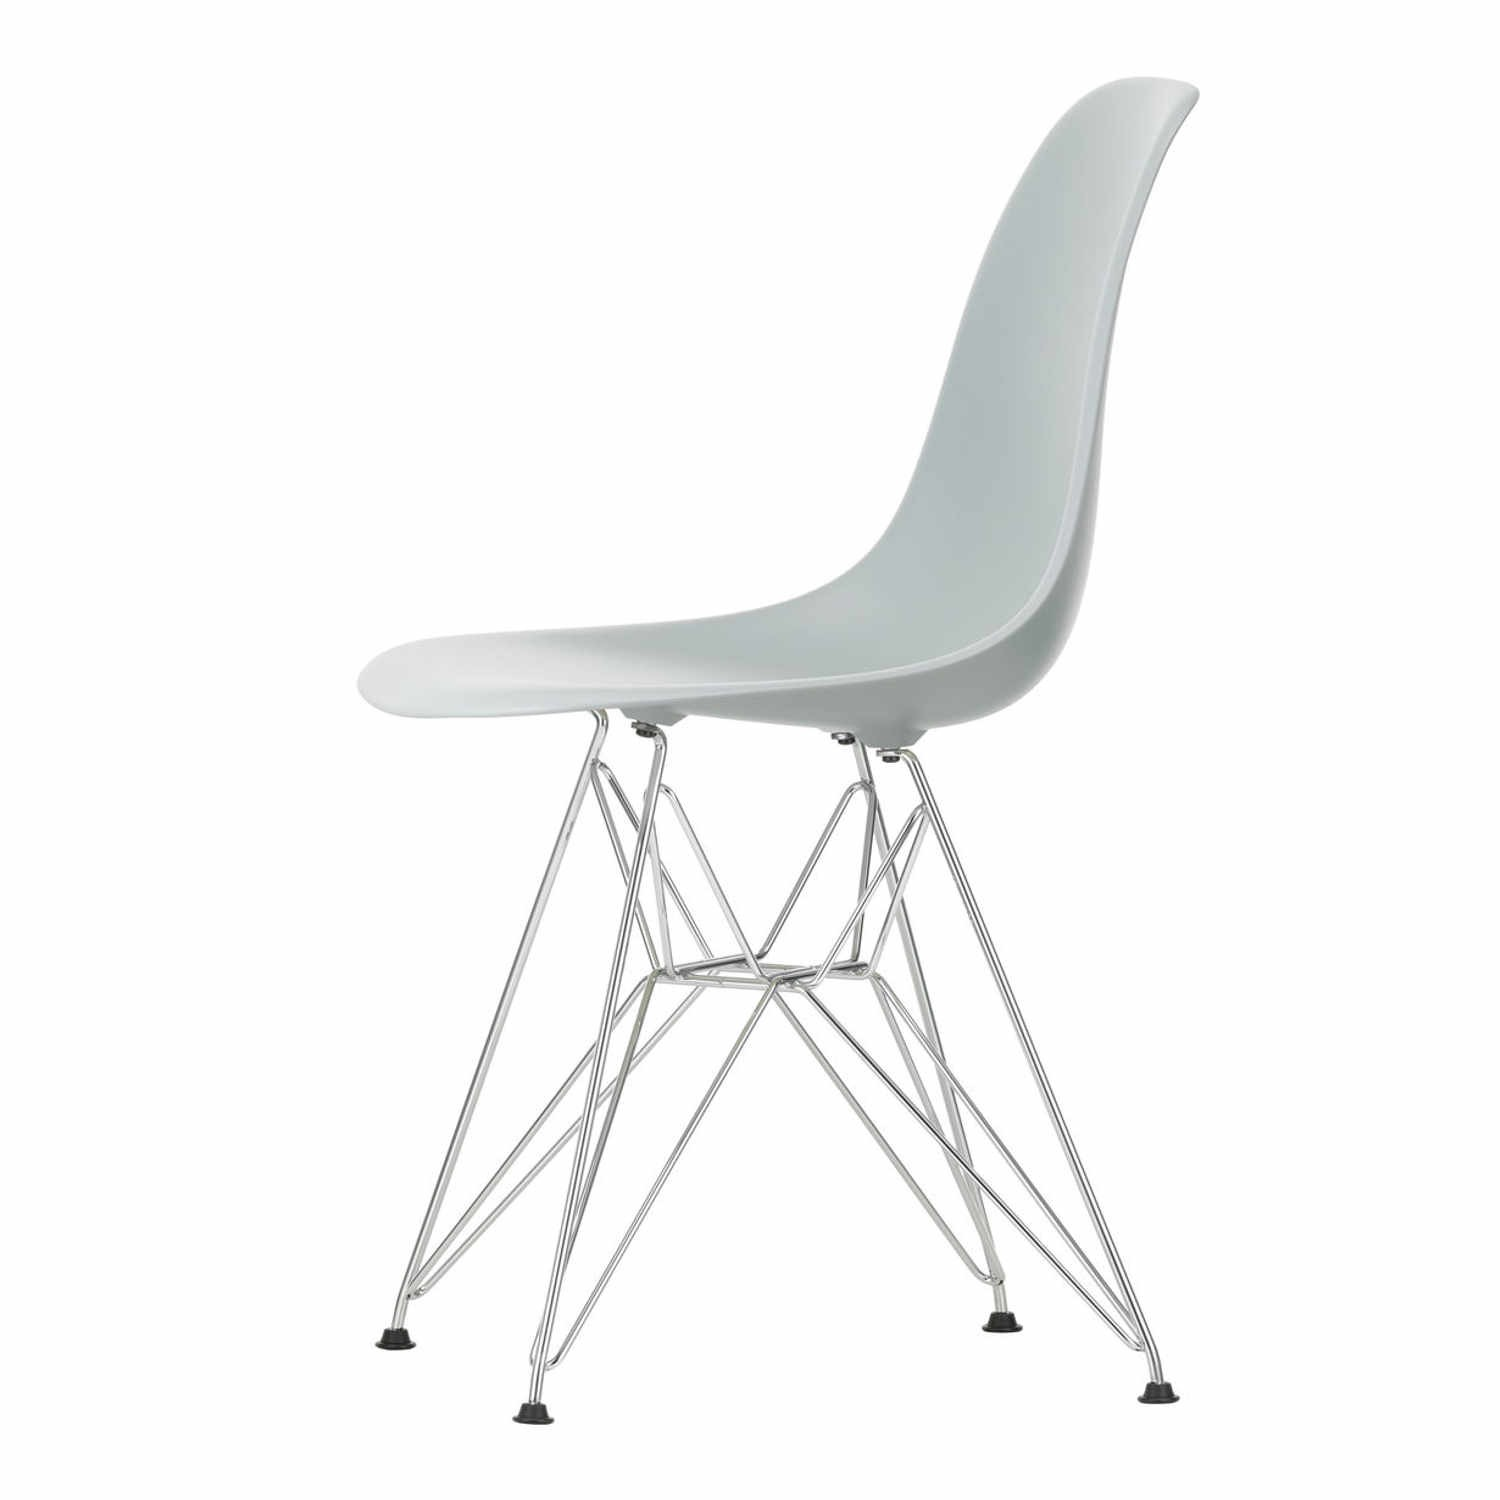 Vitra eames plastic side chair dsr stuhl bruno for Vitra eames kopie